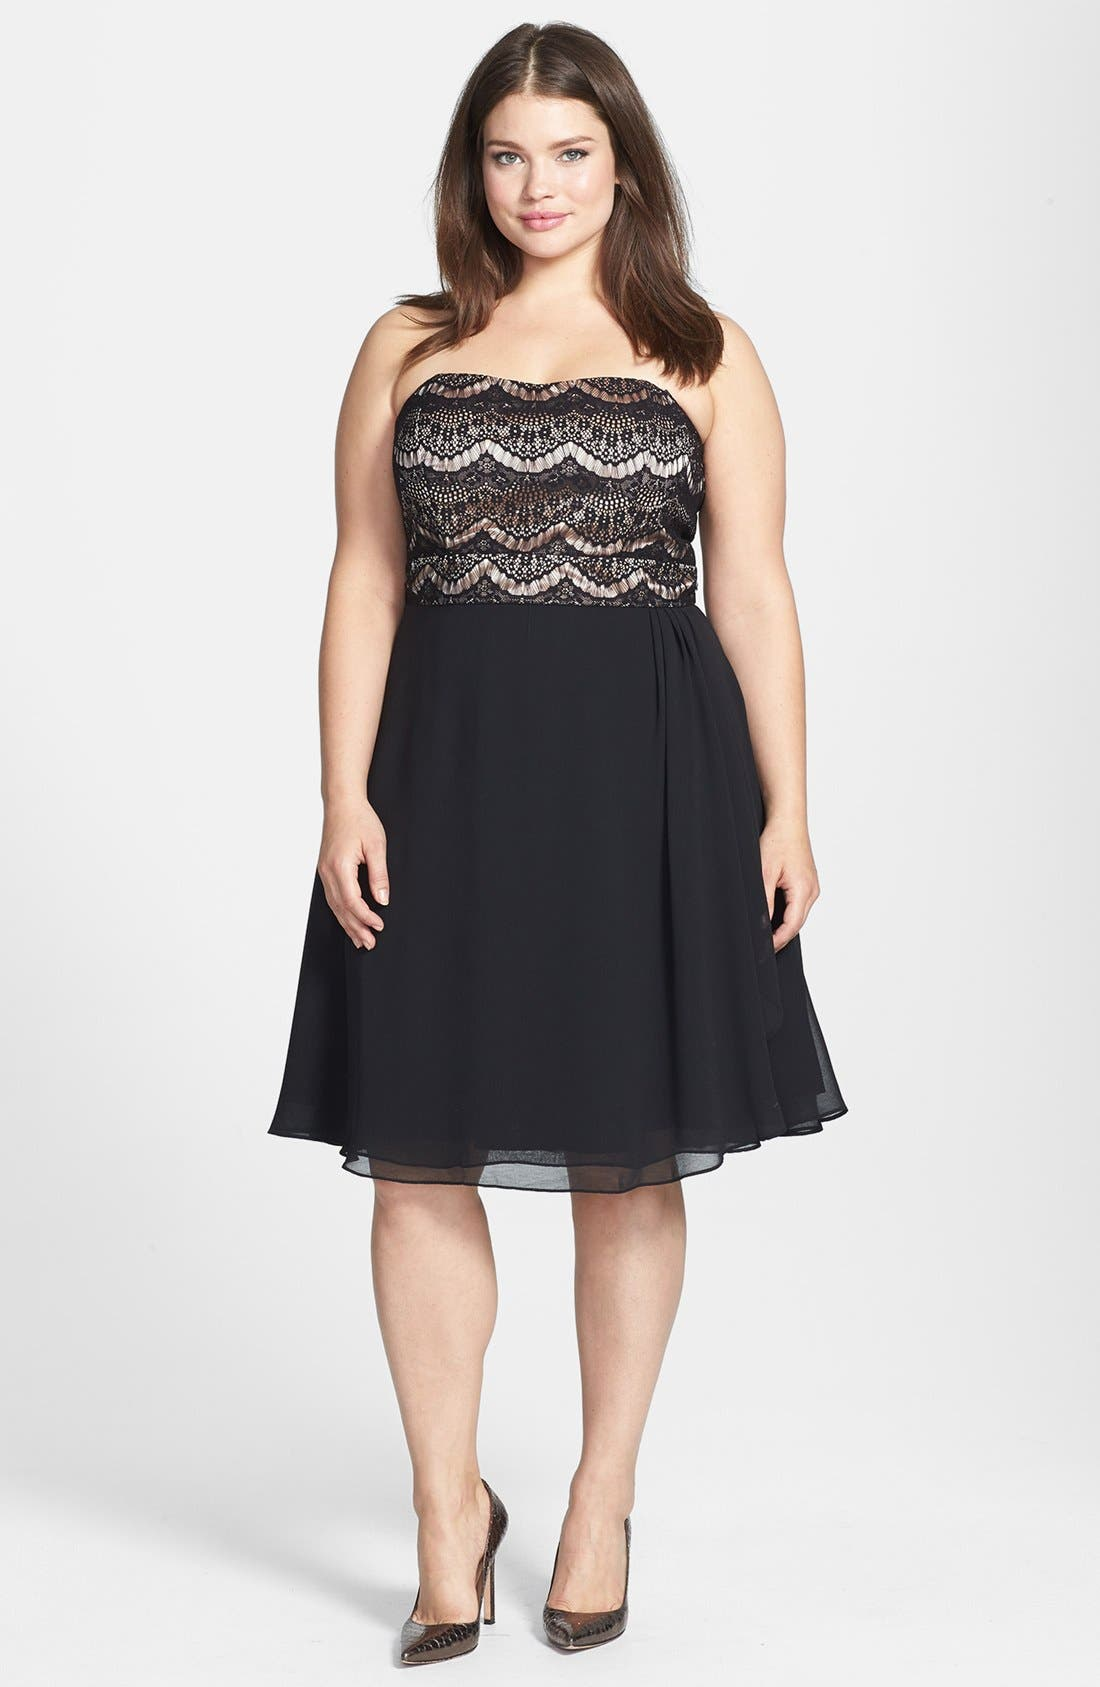 Alternate Image 1 Selected - City Chic Mixed Media Fit & Flare Dress (Plus Size)